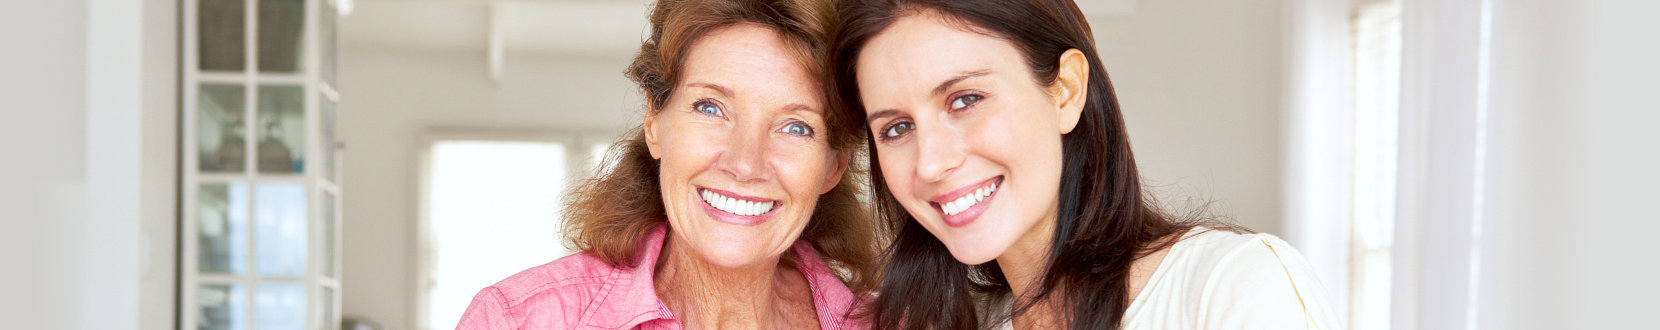 Adult mother and daughter smiling